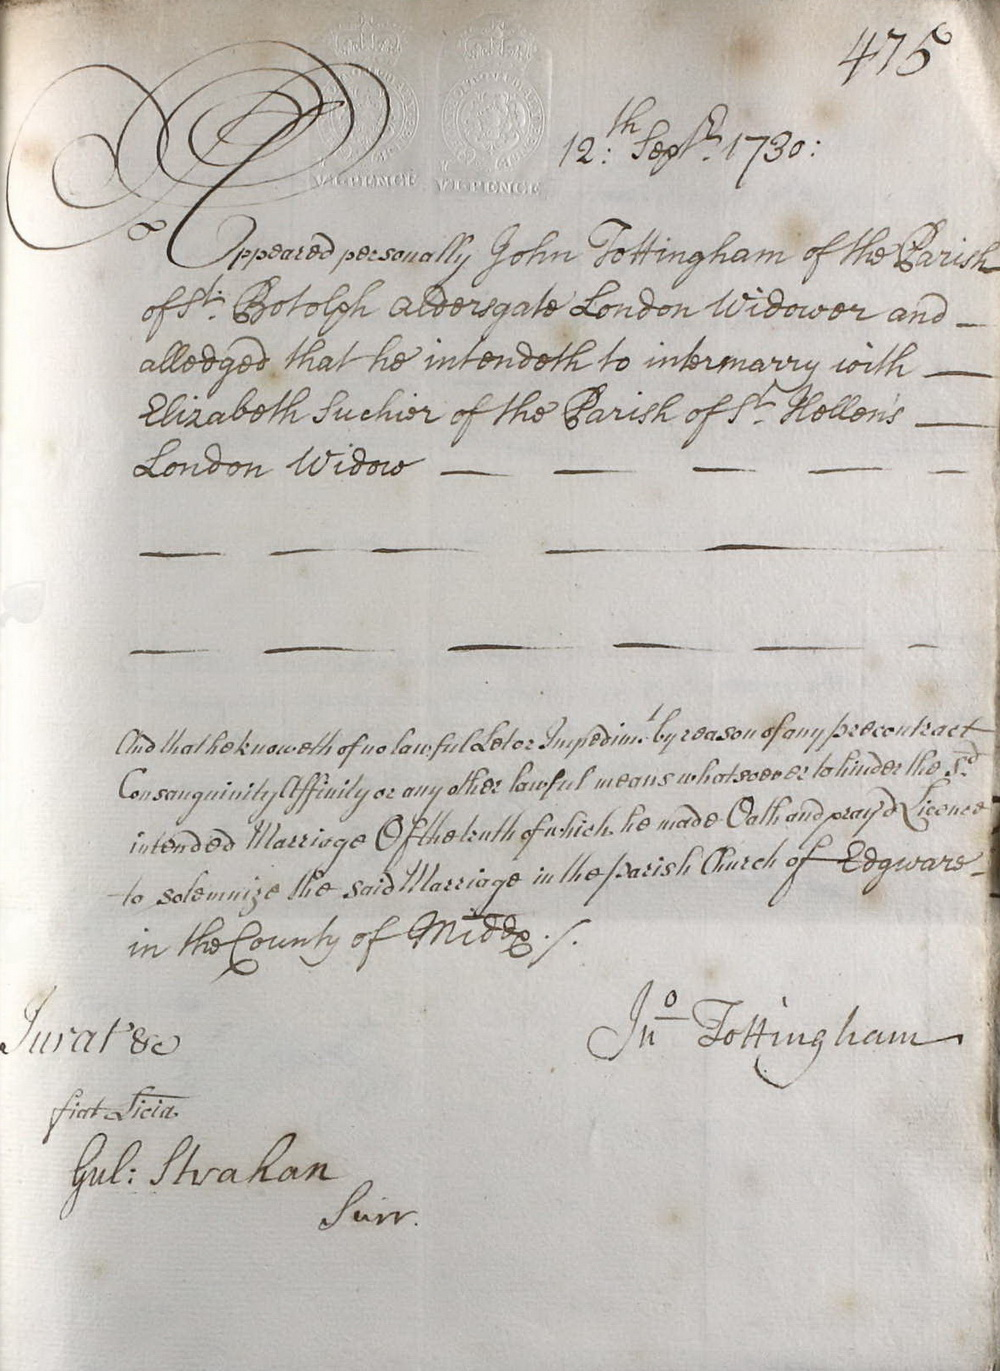 Marriage Allegation made by John Tottingham 12 September 1730